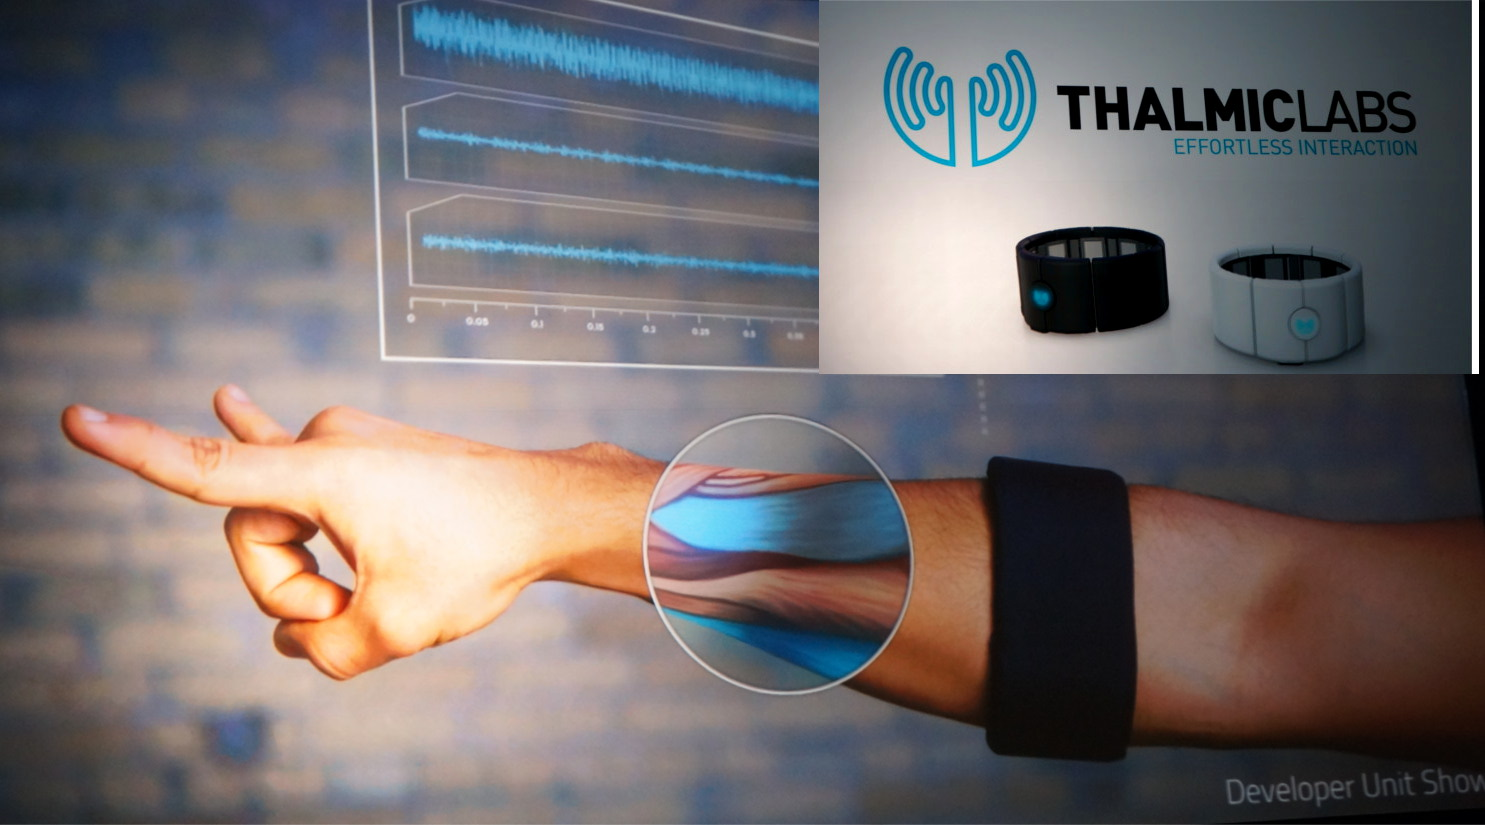 SWW2015-Thalmiclabs-hand